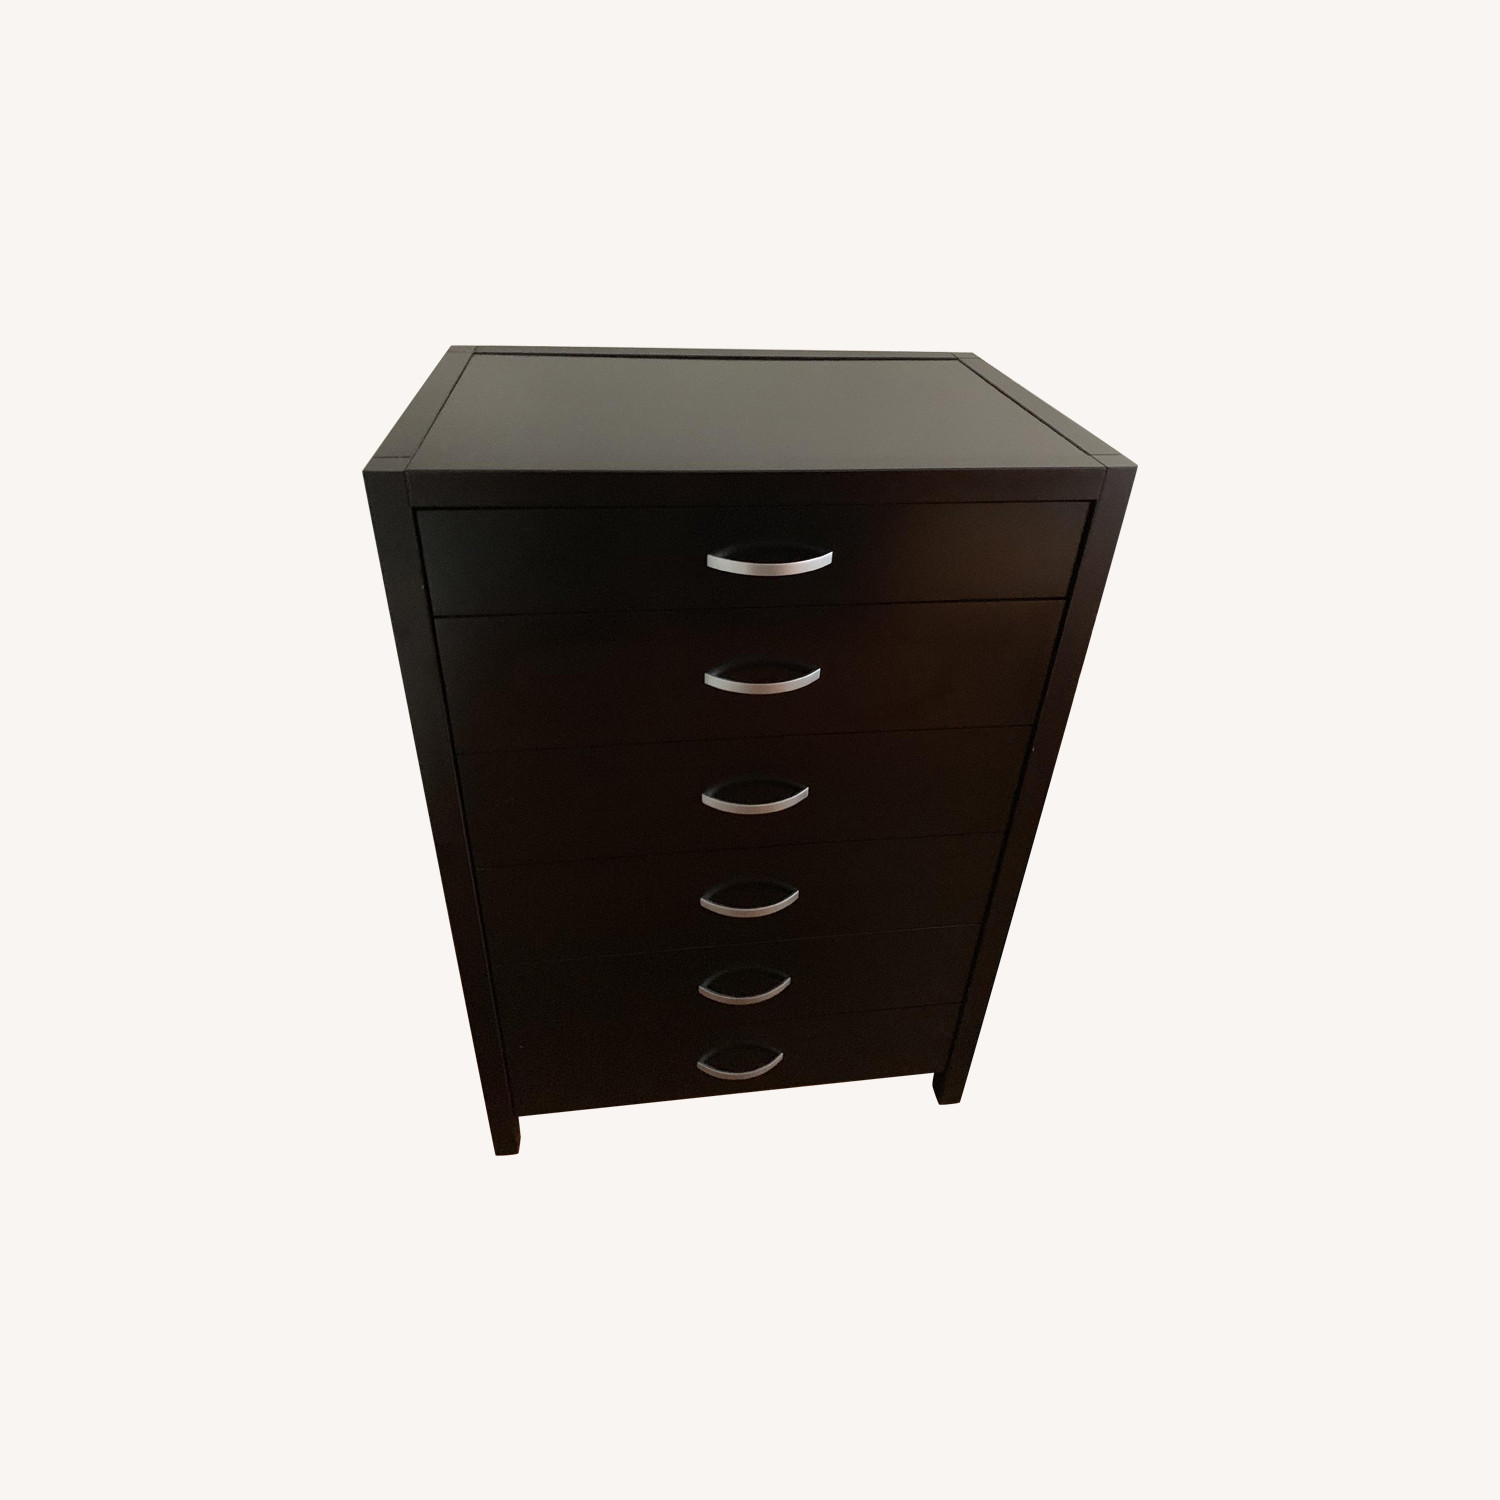 Dresser- almost new condition, spacious drawers